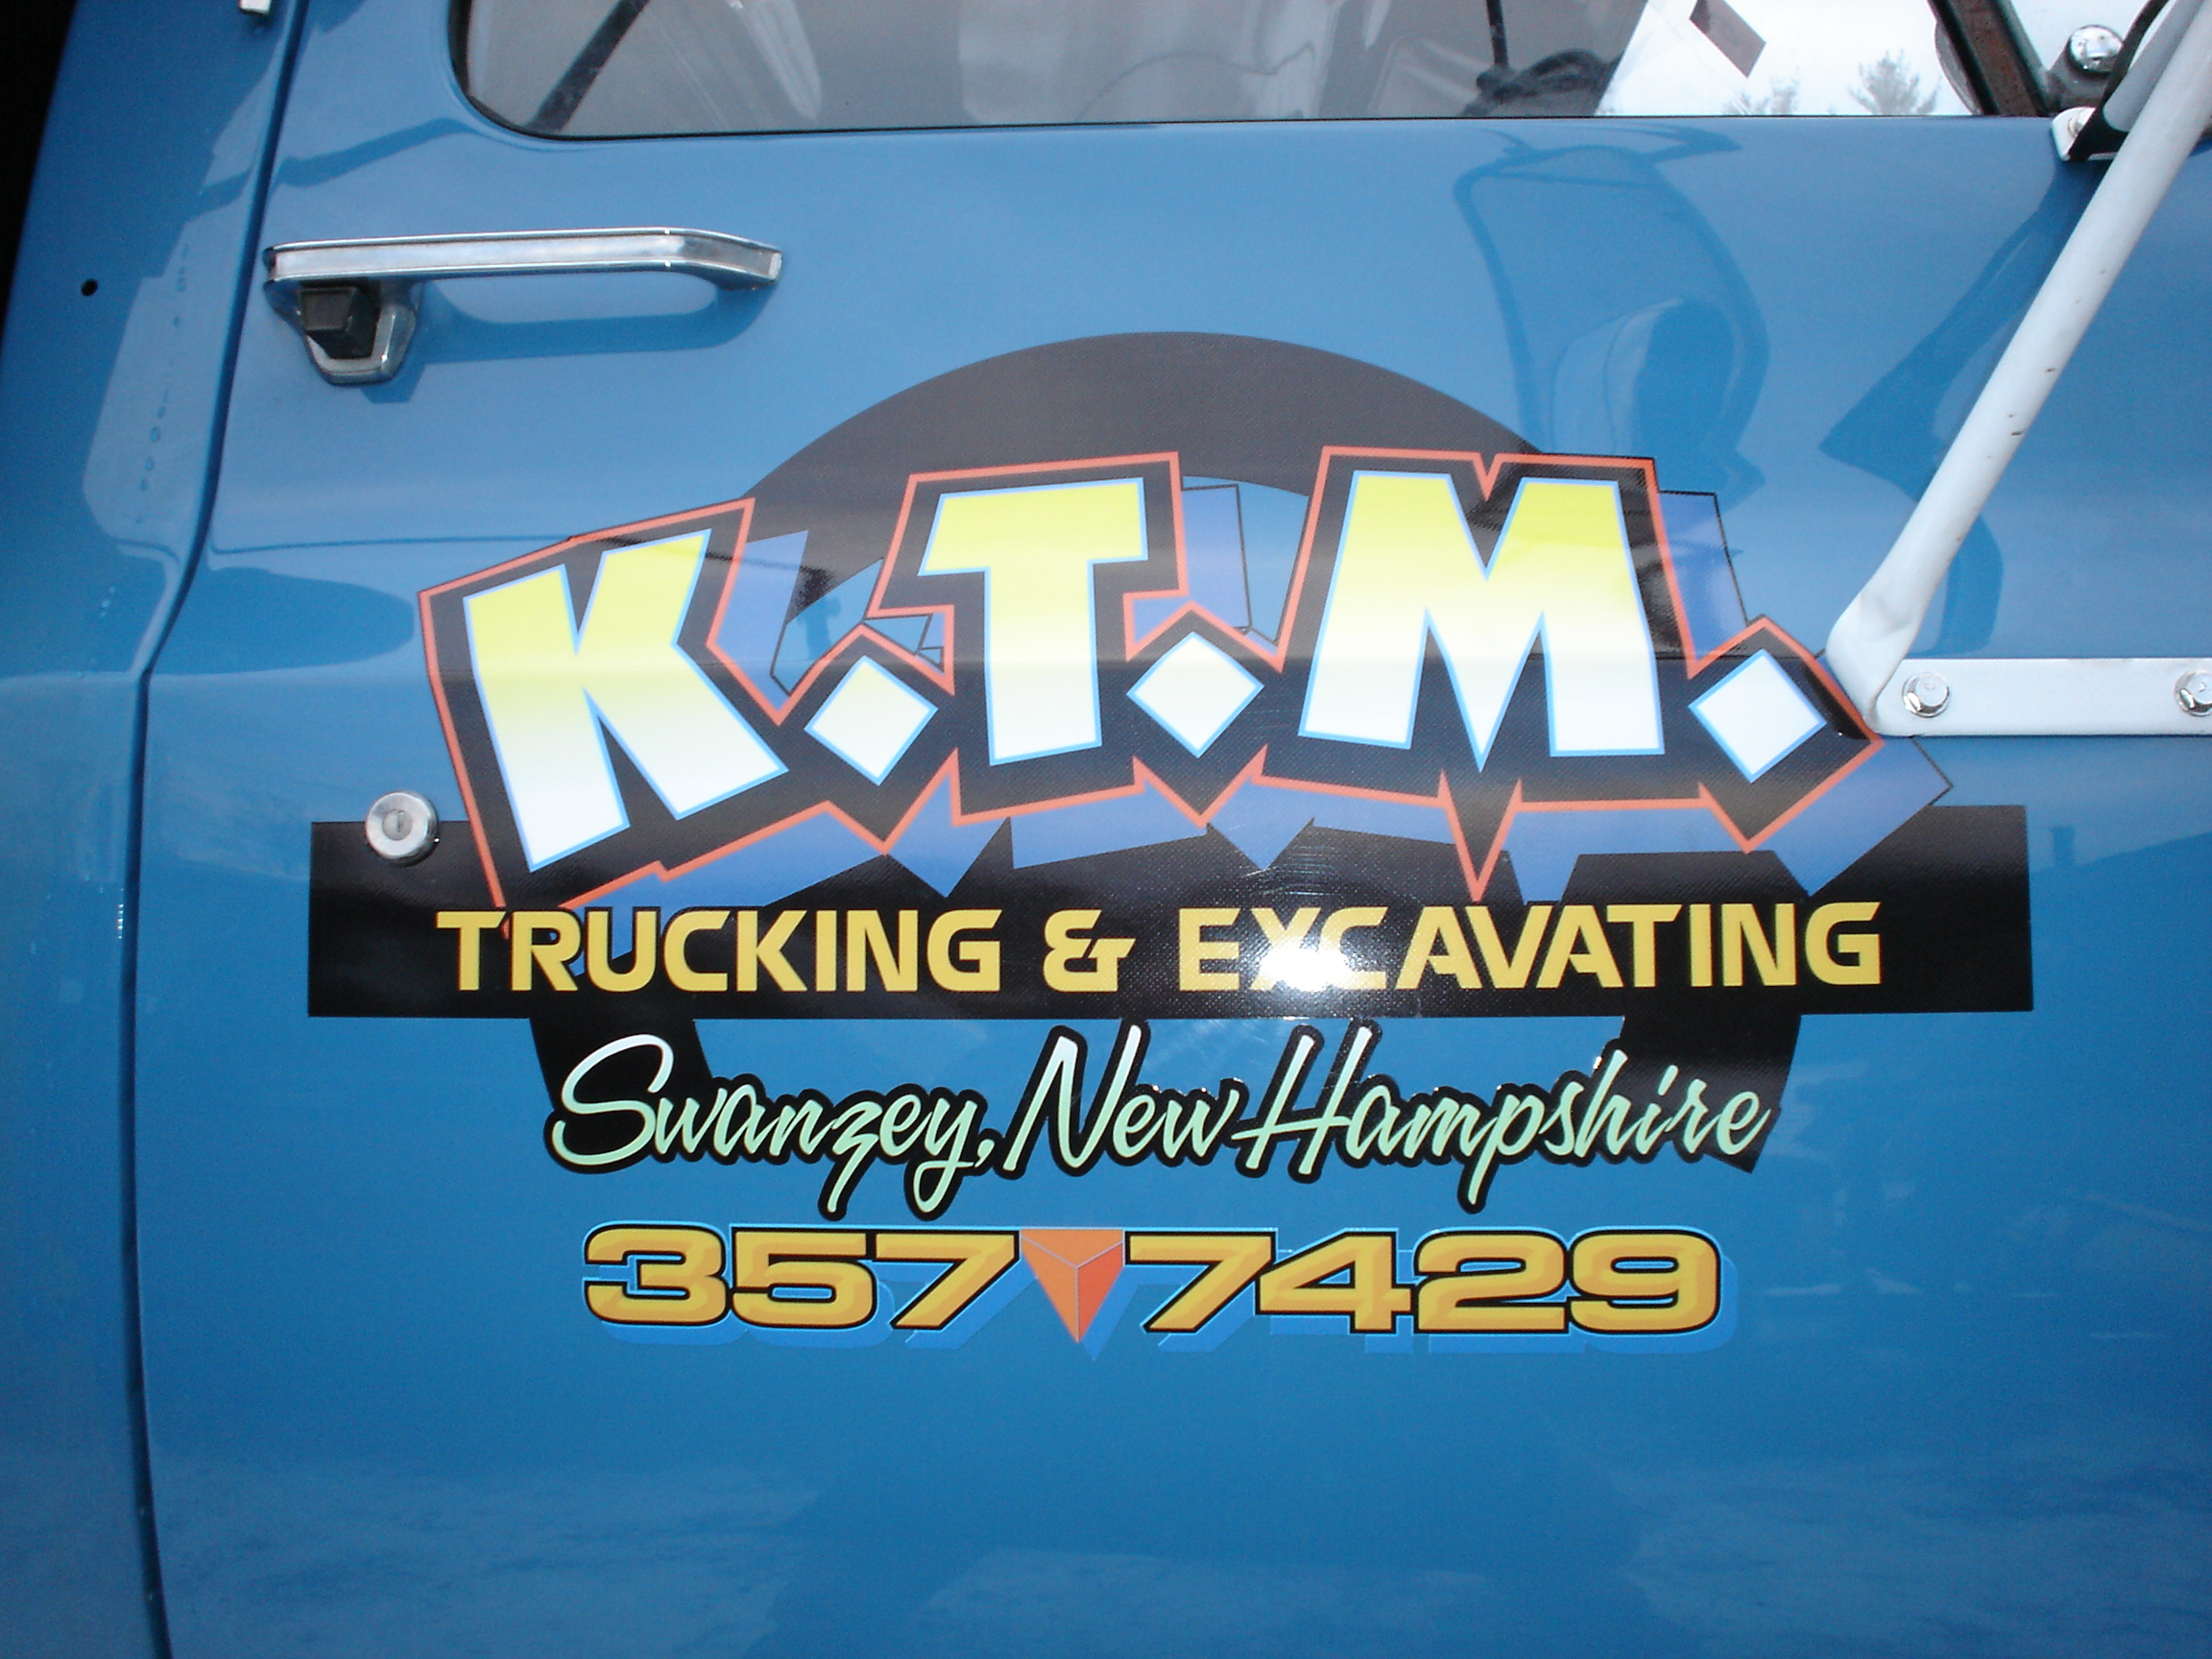 Johnsons Lettering Custom Vinyl Lettering And Wall Lettering - Graphics for cars and truckscustom vinyl graphics logos decals vinyl lettering graphics for